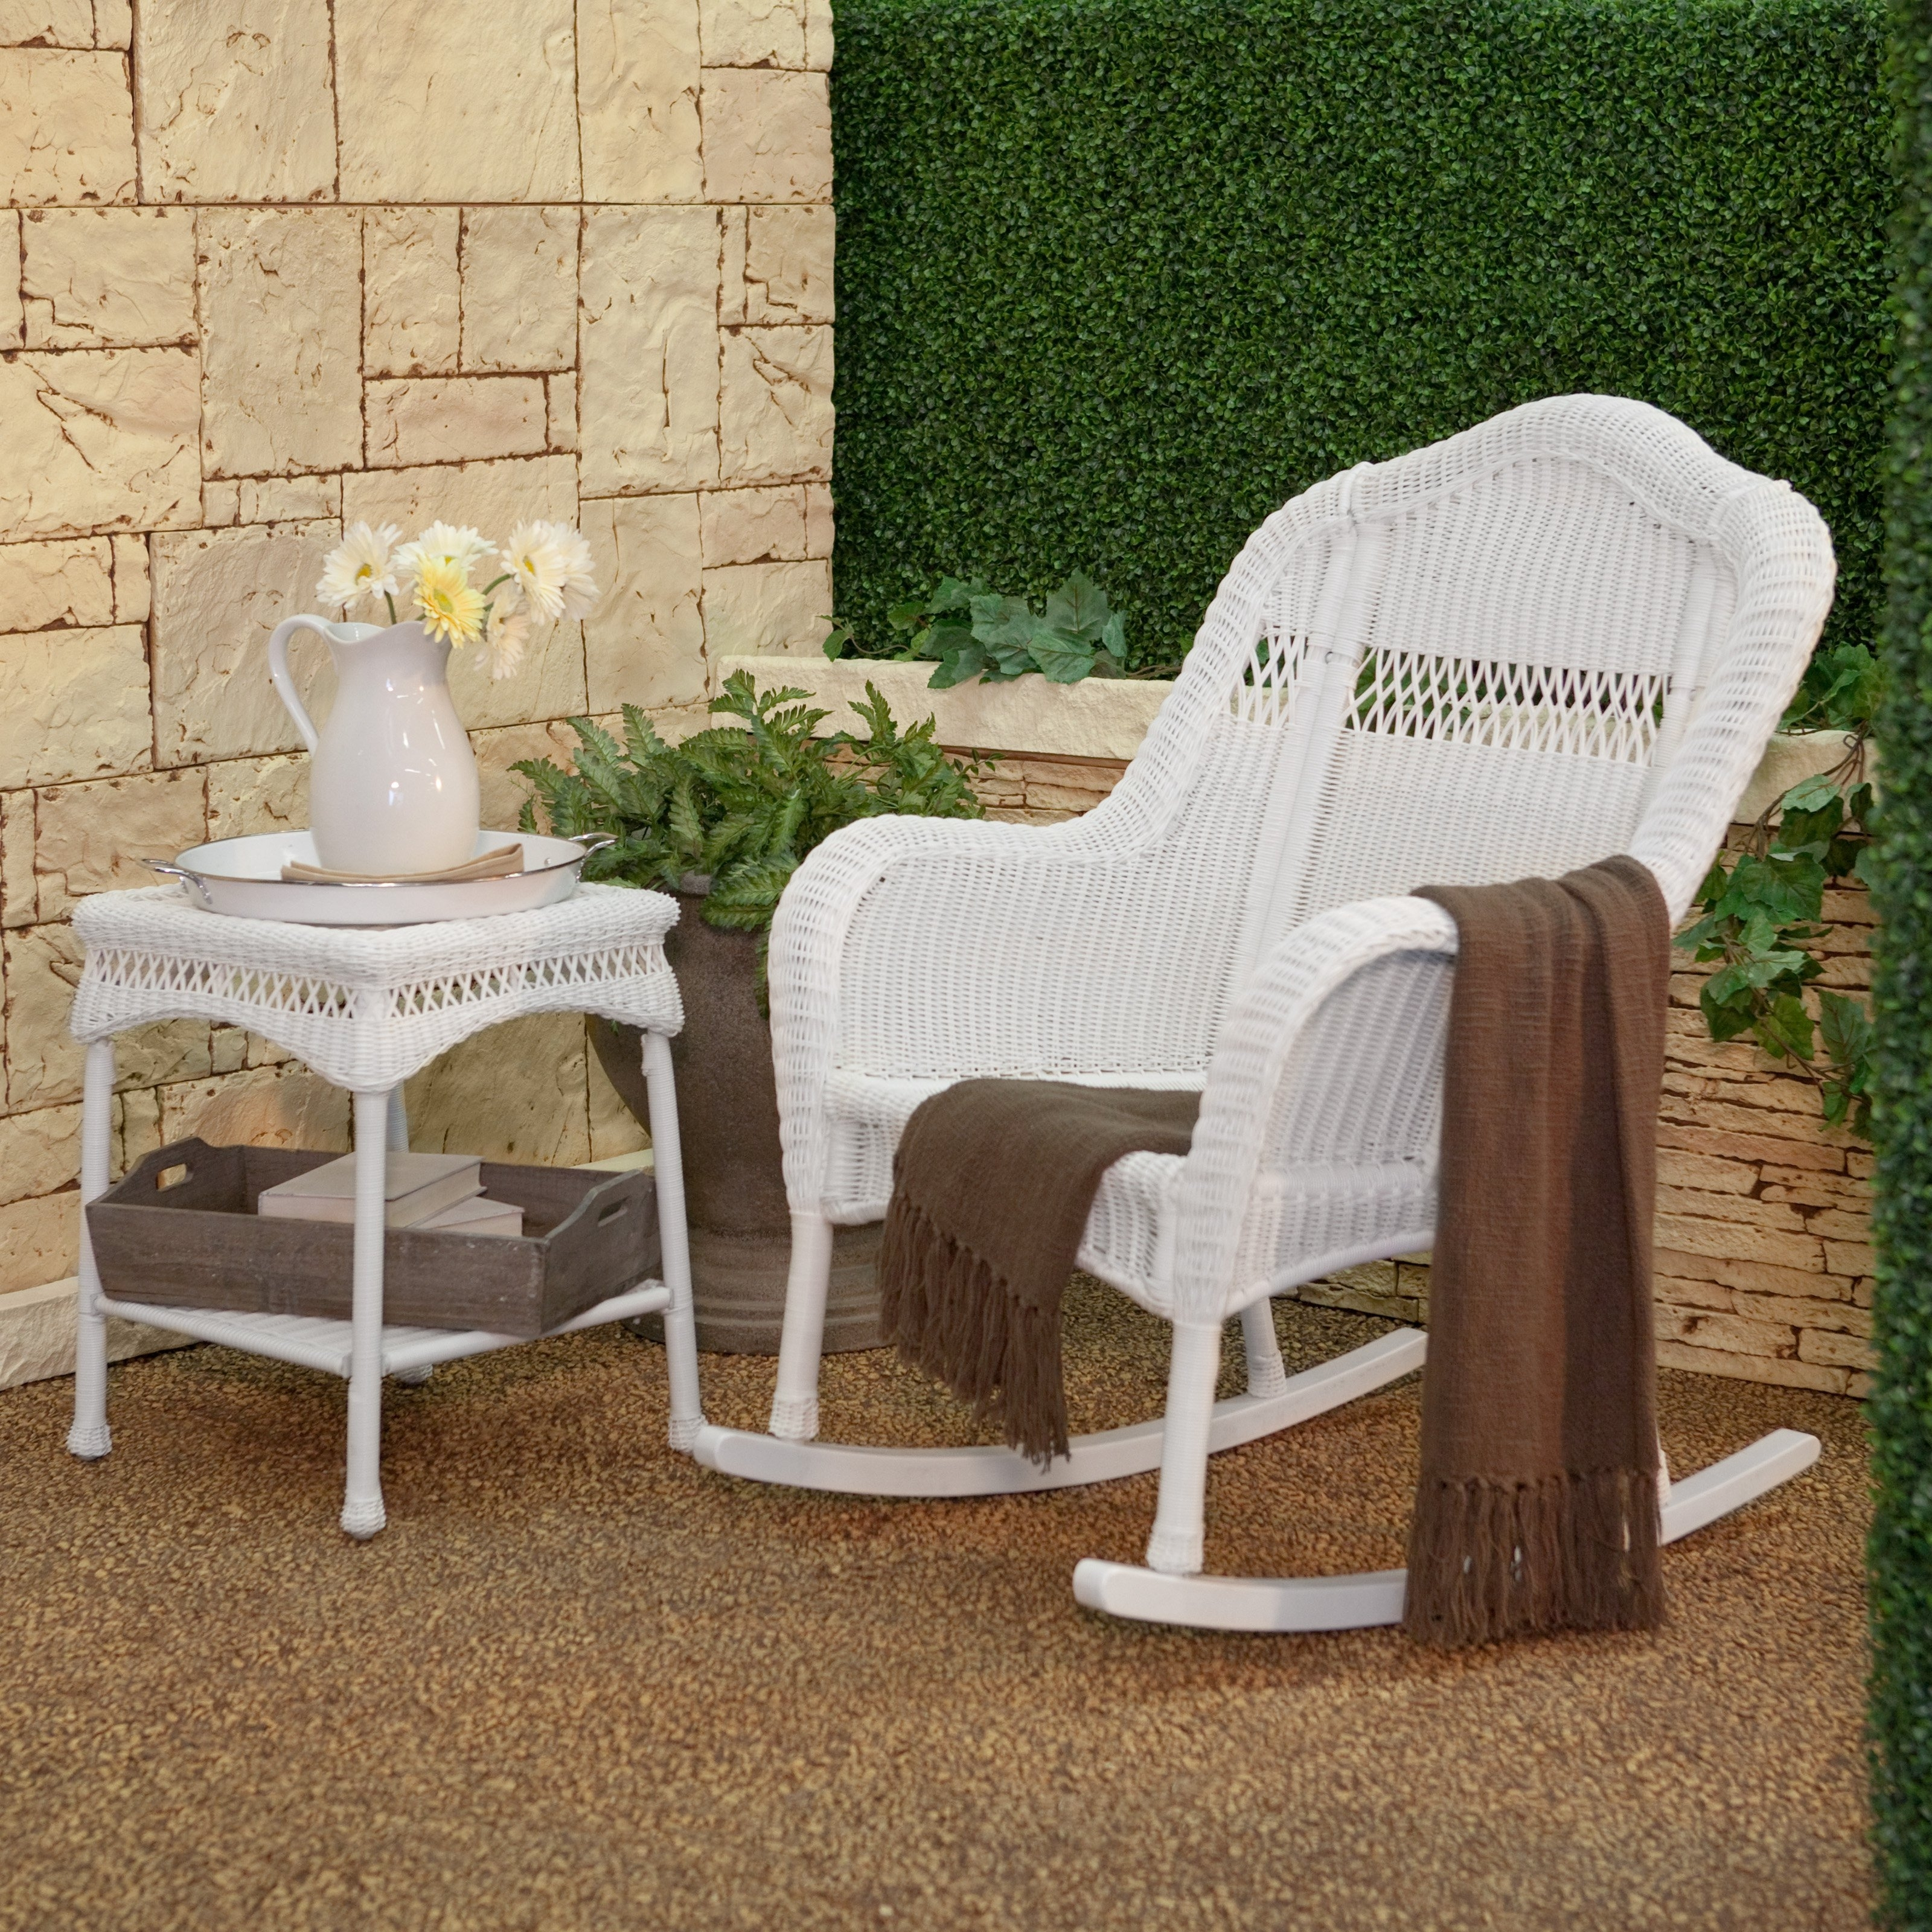 Chair | Rattan Glider Outdoor White Rocking Chairs Sale Plastic Throughout Rattan Outdoor Rocking Chairs (View 4 of 15)